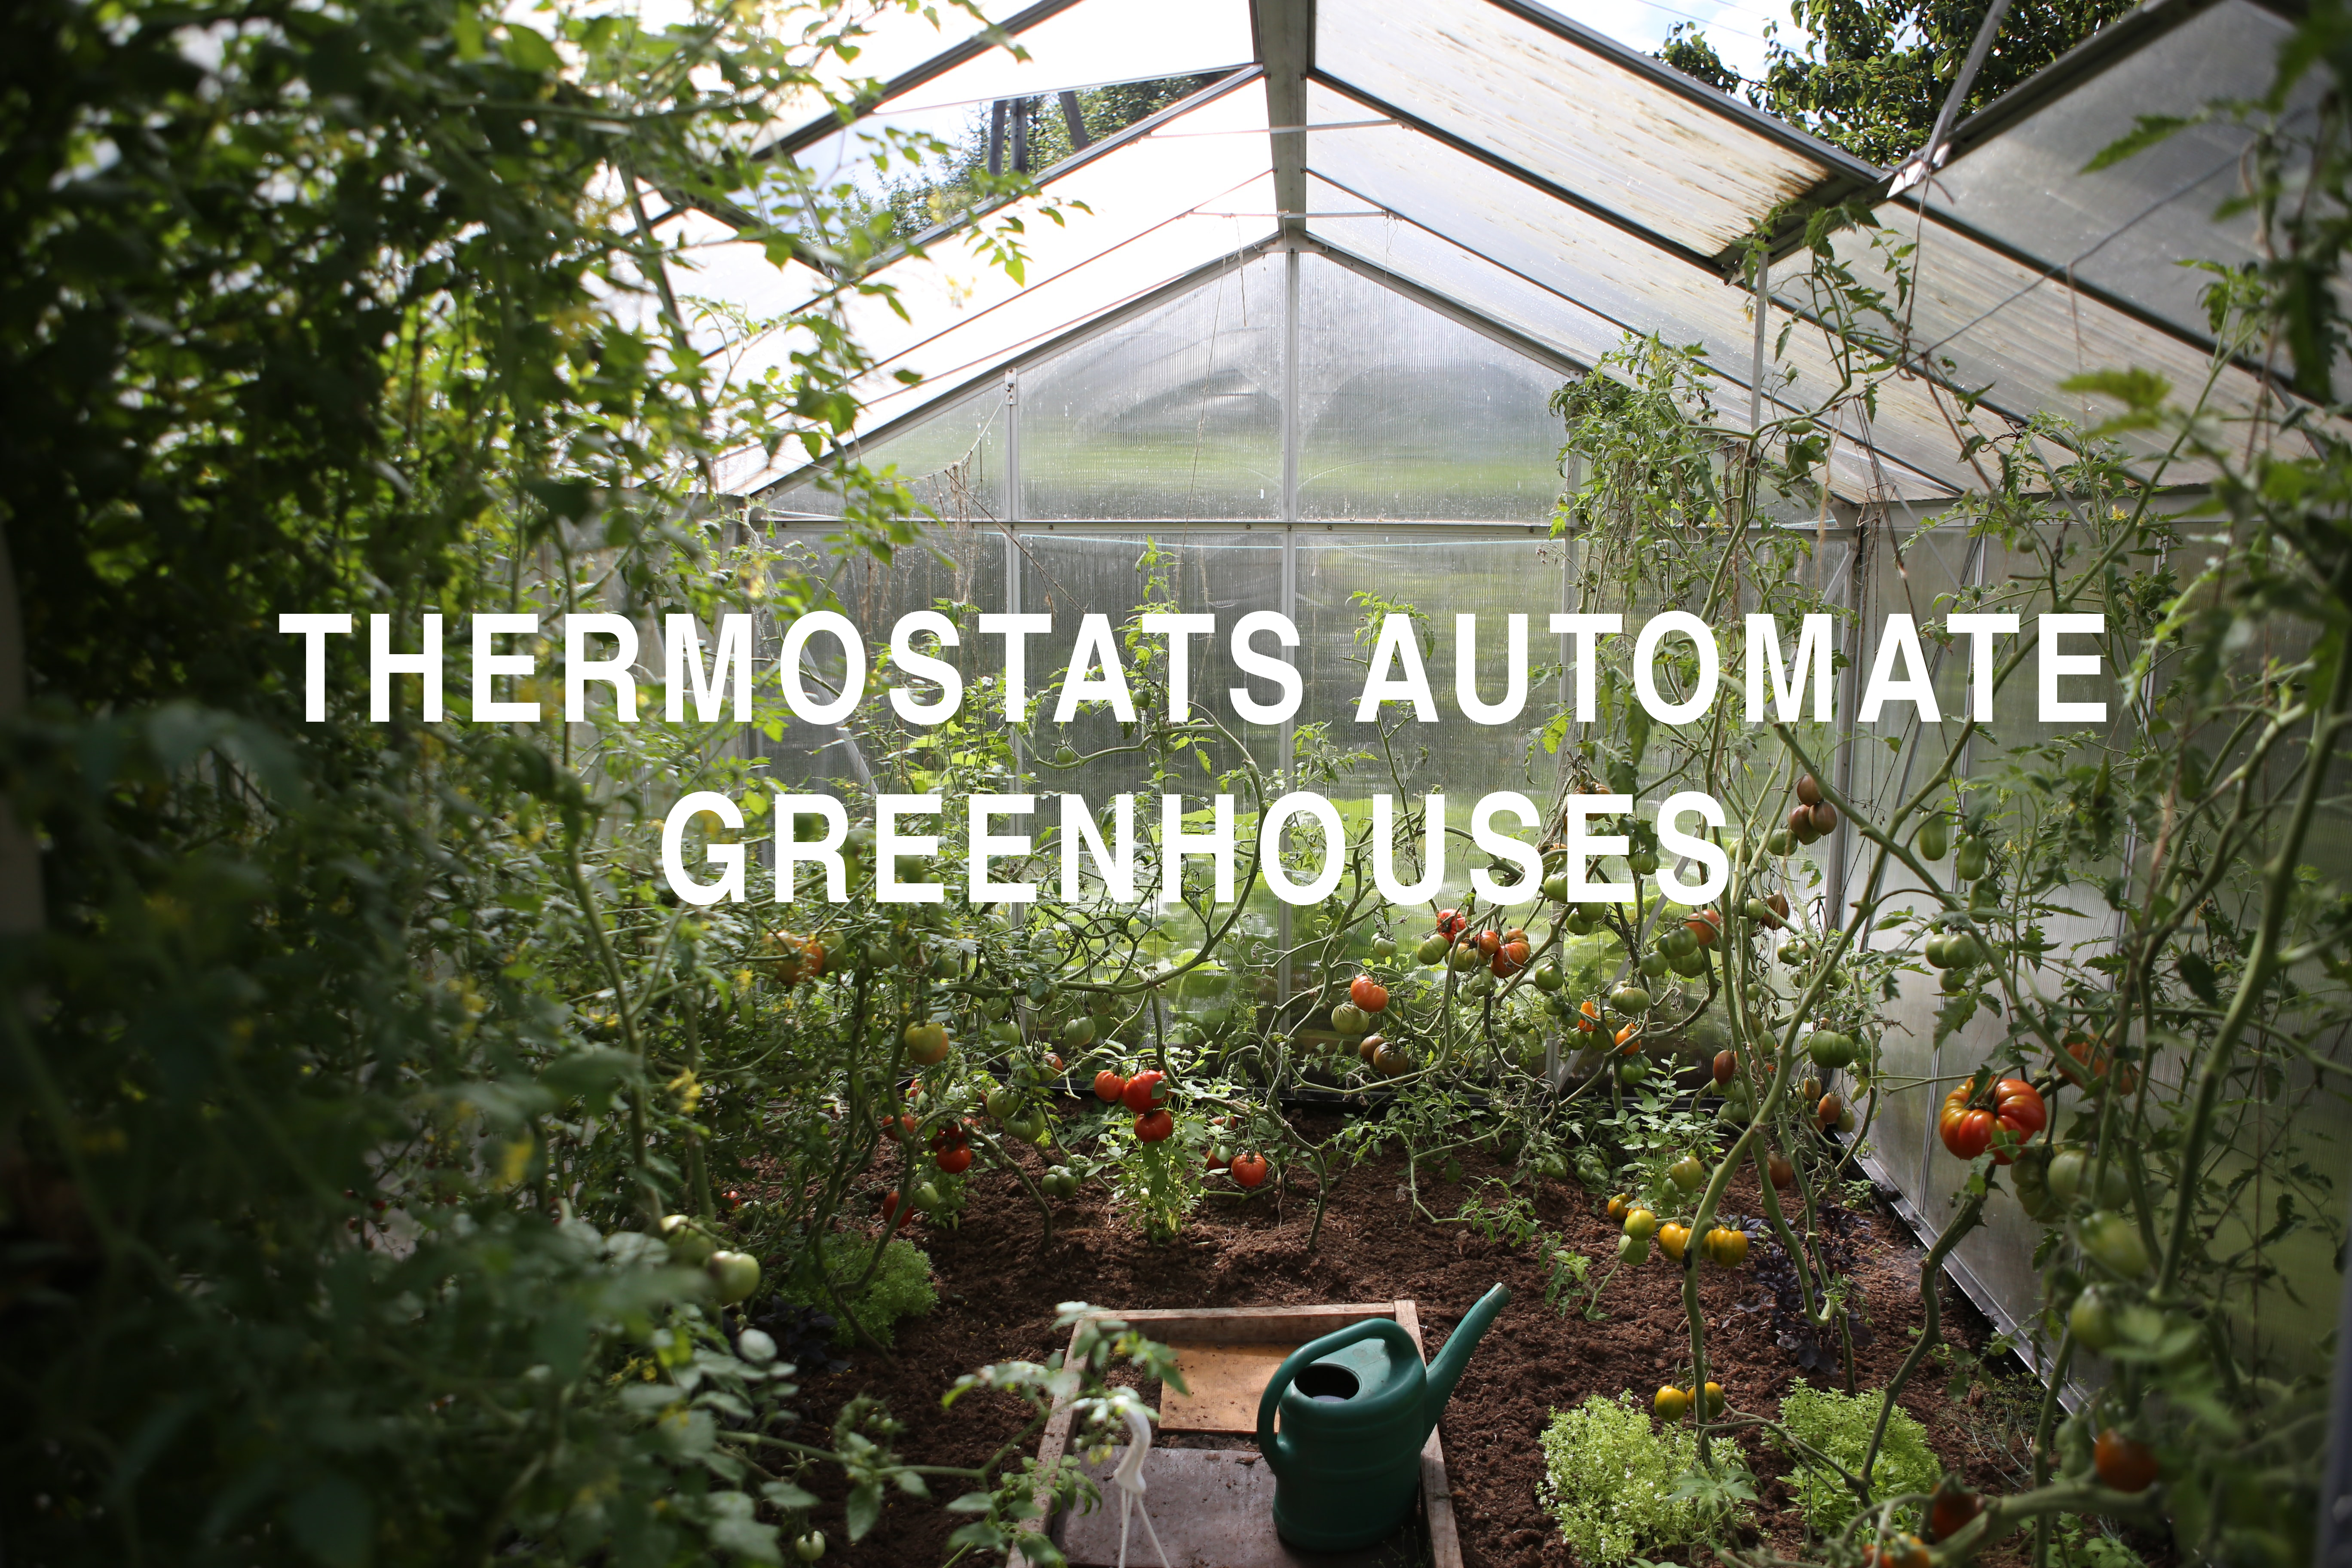 Thermostats Automate Greenhouses